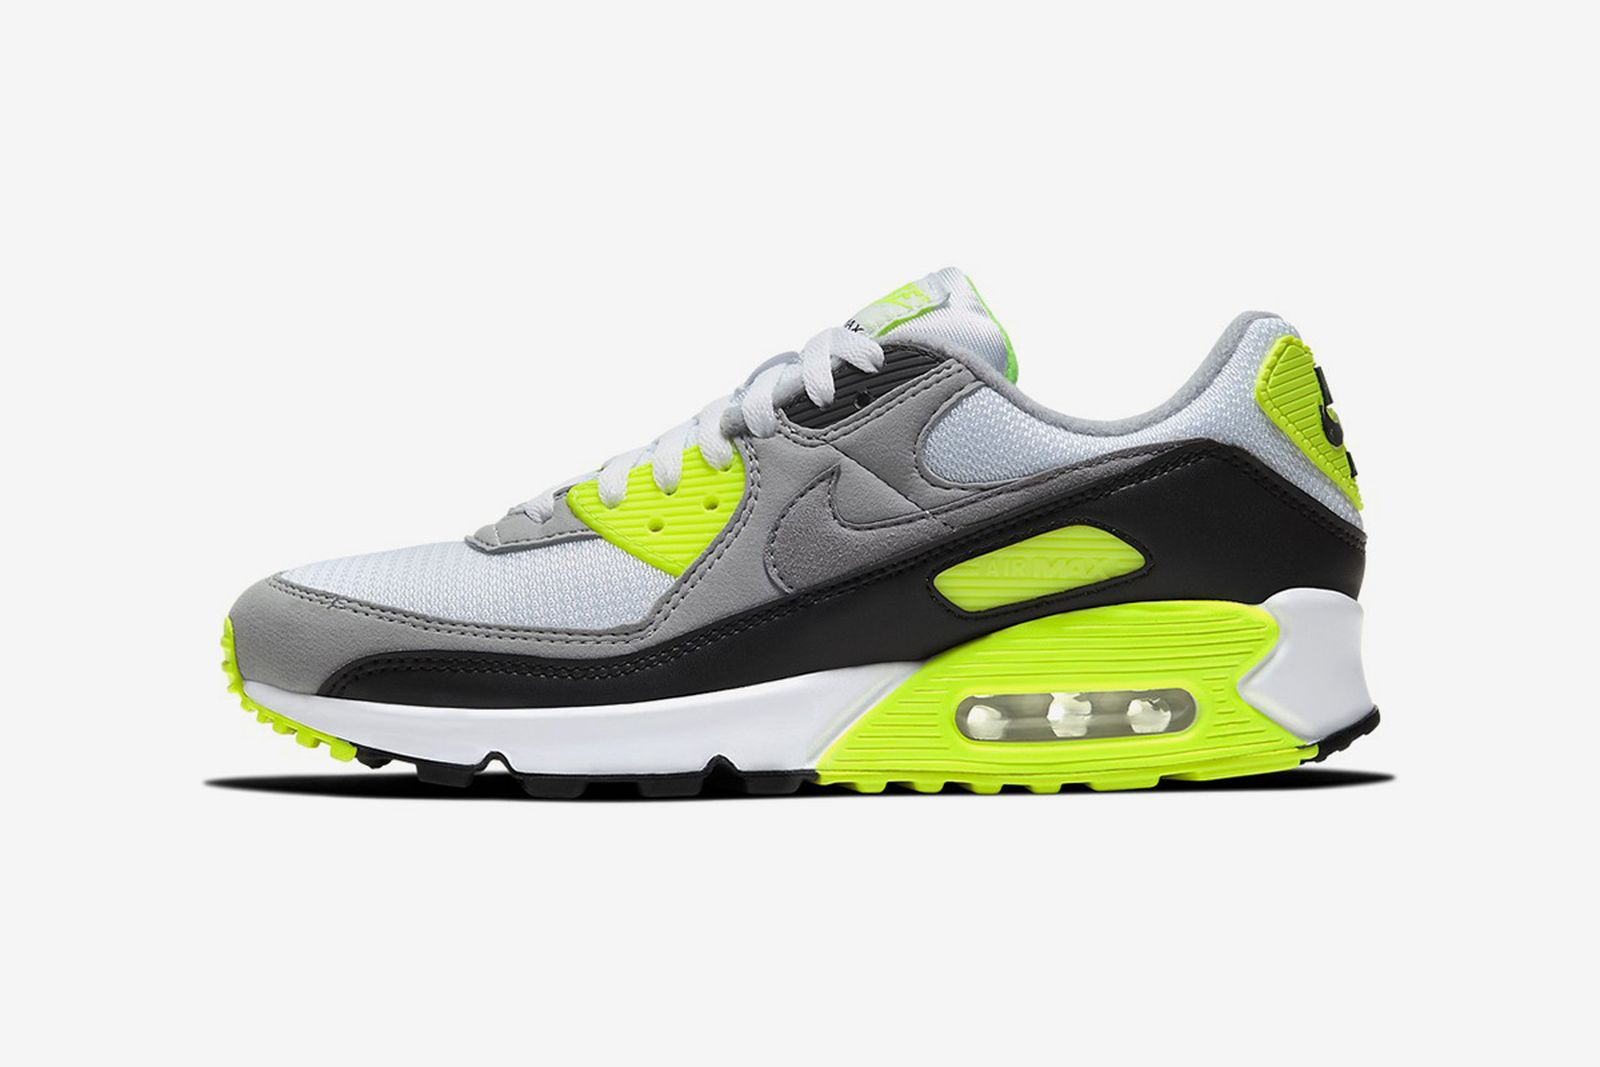 nike-air-max-90-30th-anniversary-colorways-release-date-price-1-11